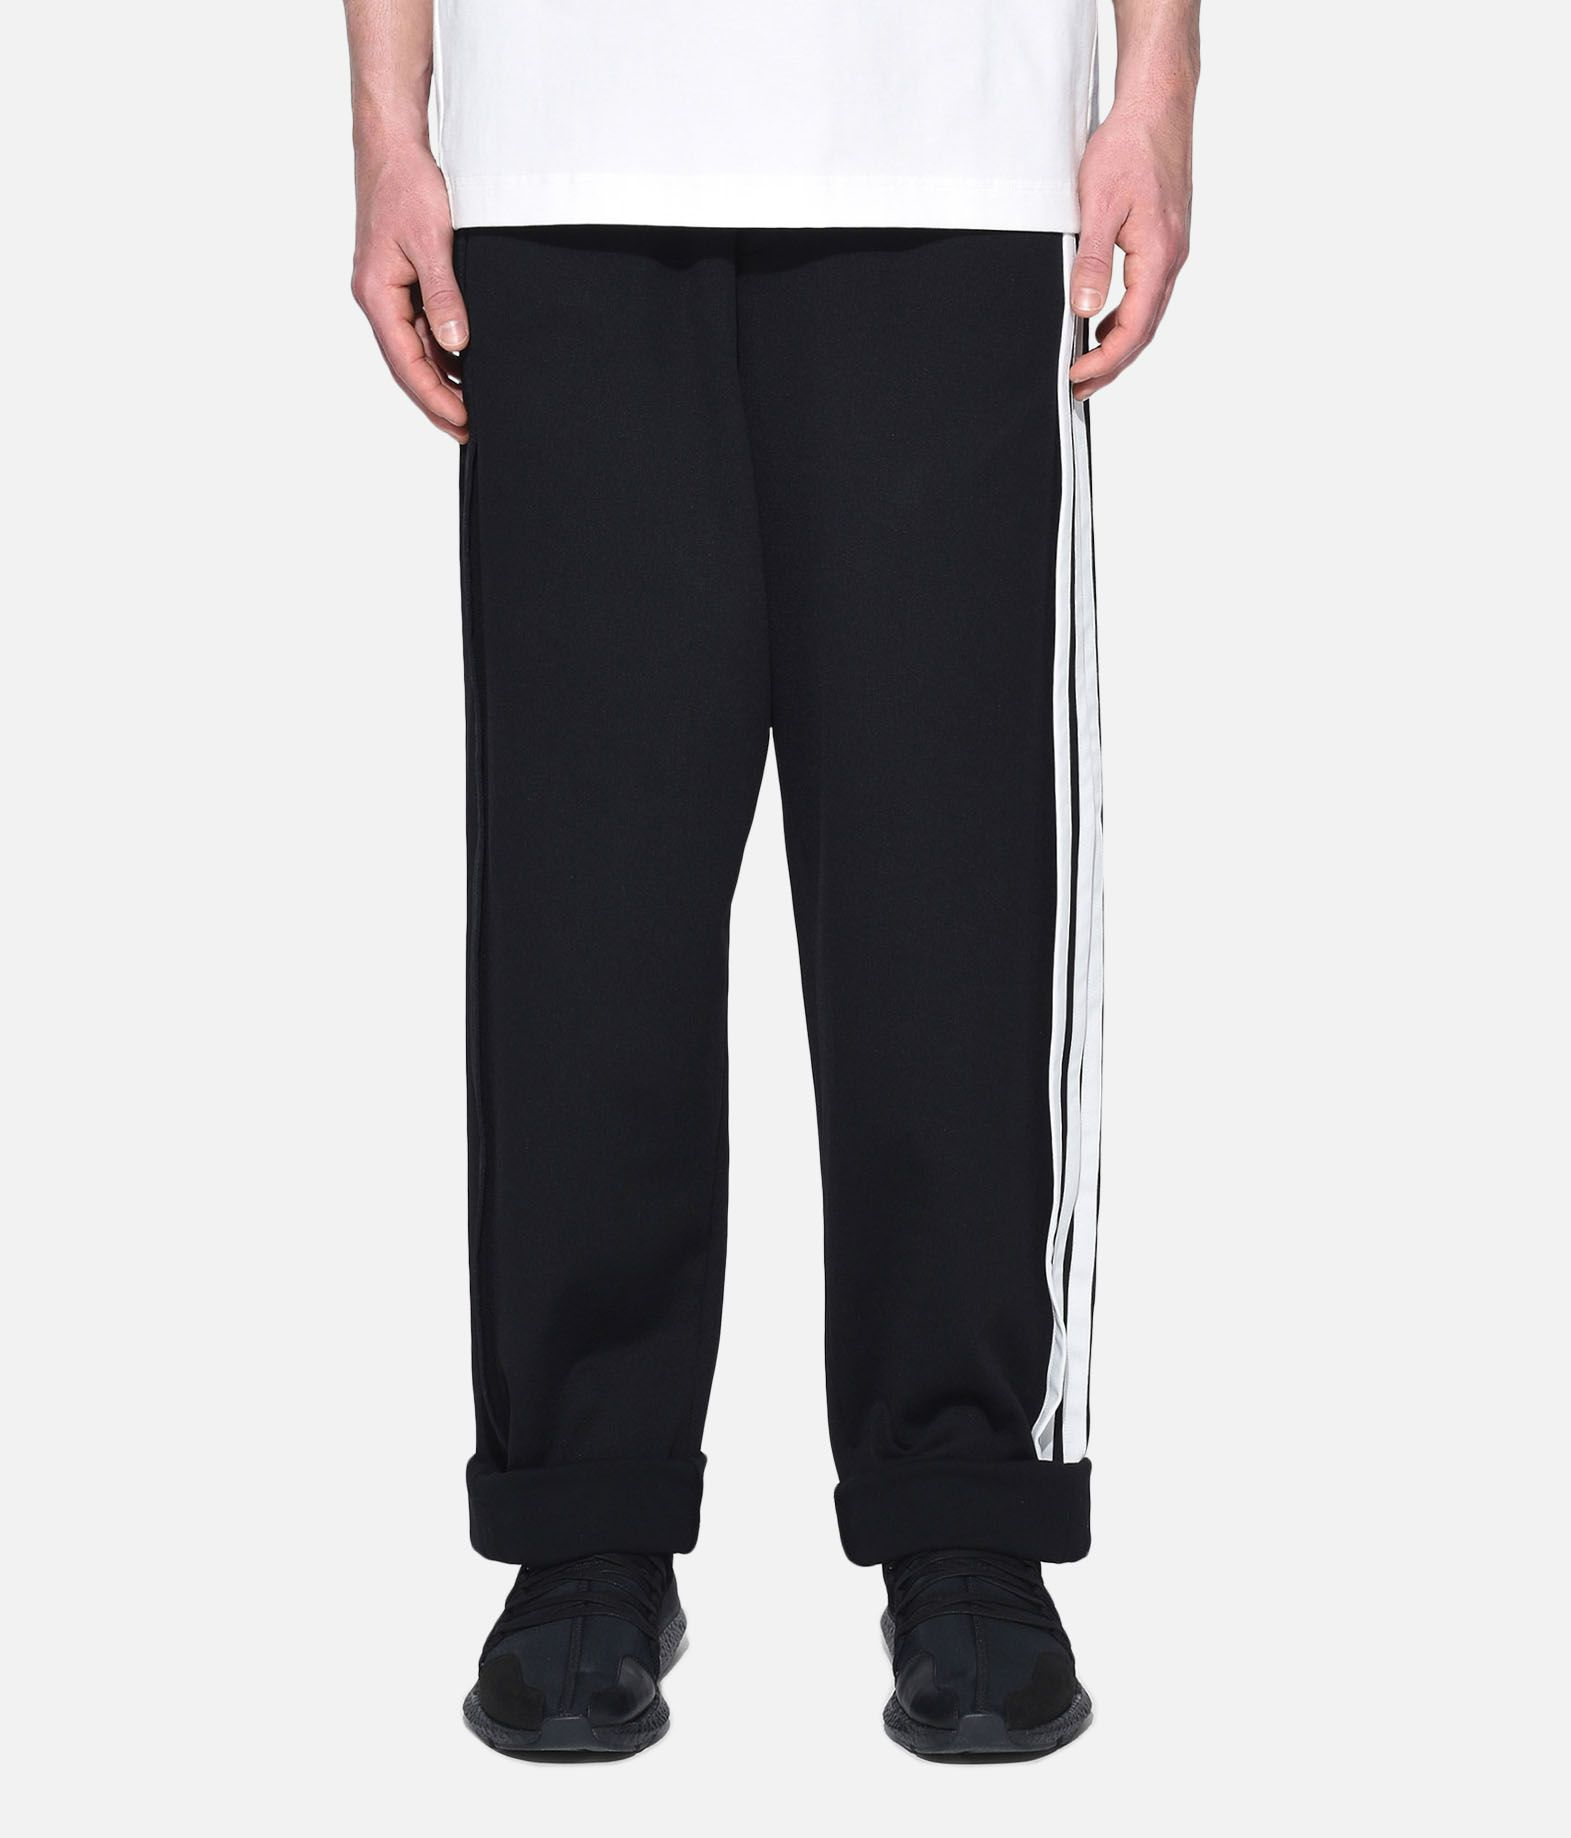 Y-3 Y-3 3-Stripes Selvedge Wide Pants Tracksuit bottoms Man r